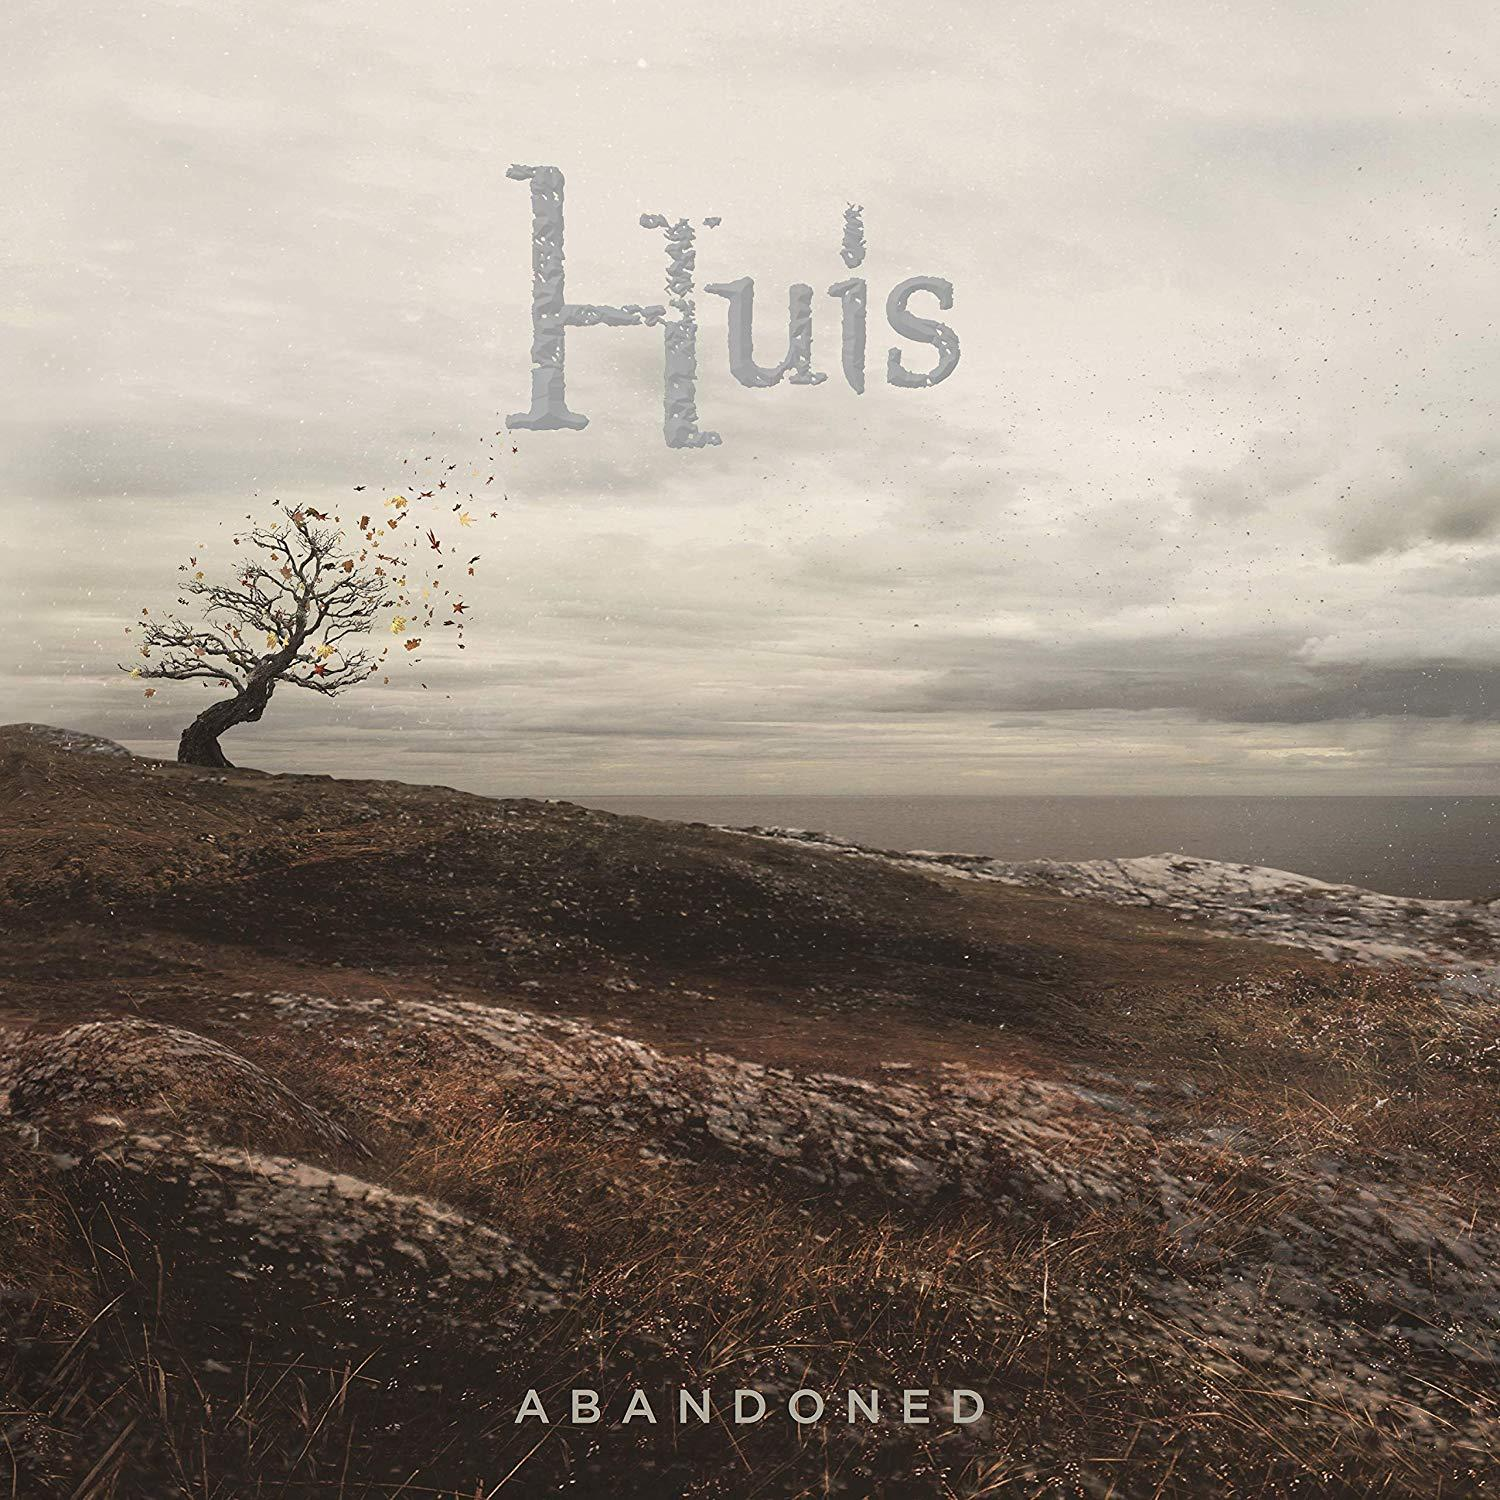 Chronique d'album : HUIS (Prog') Abandoned (2019)